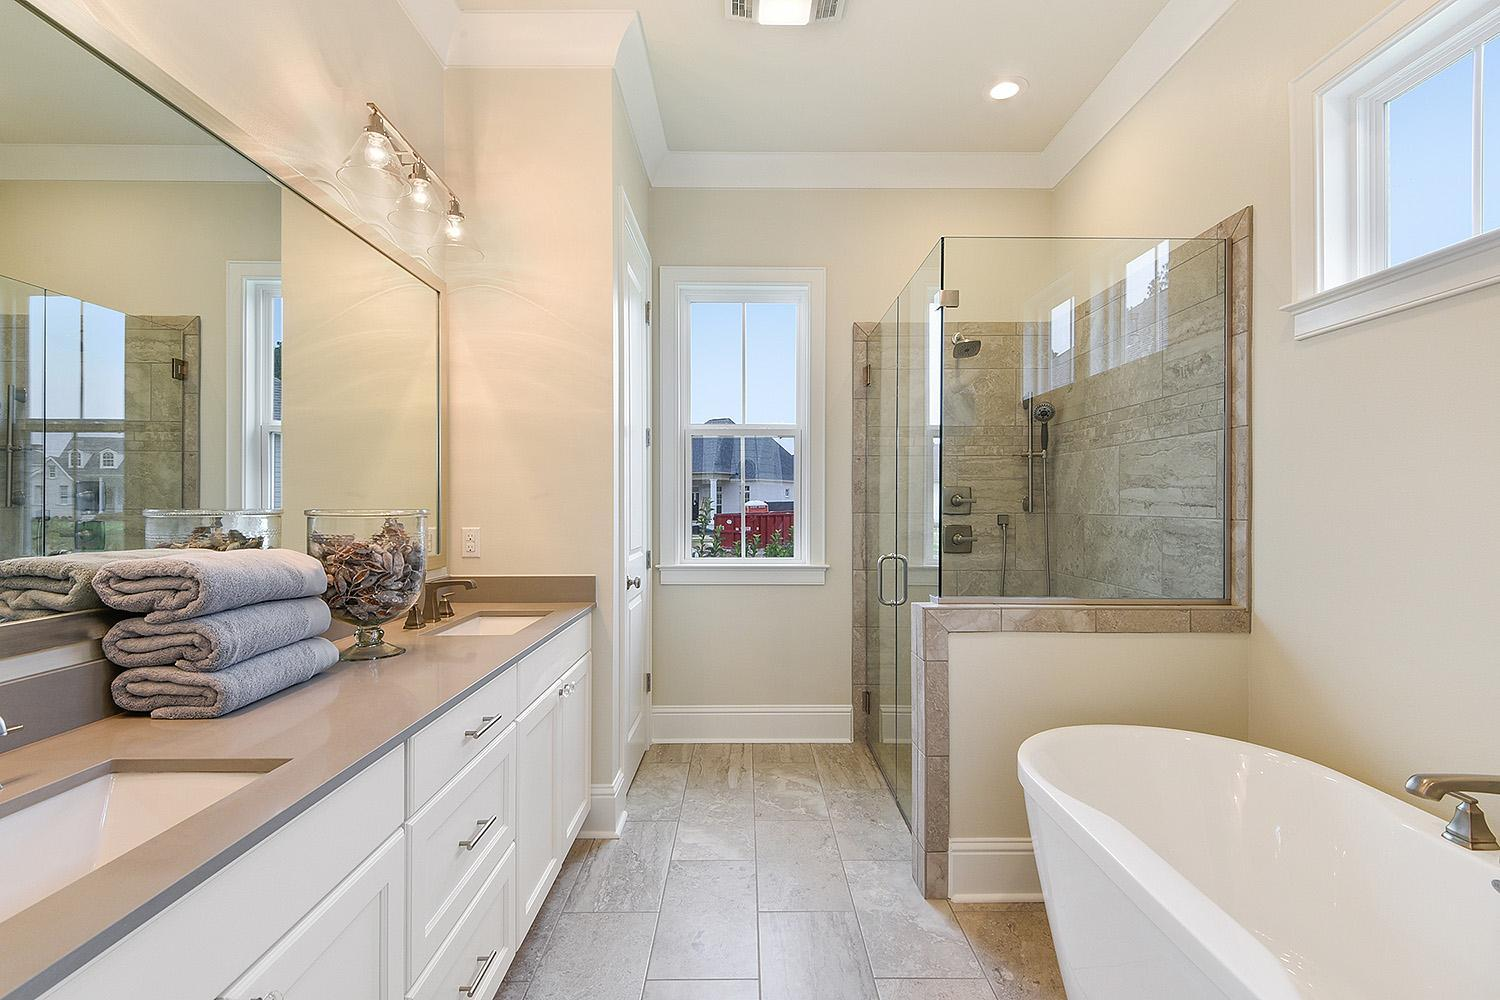 Bathroom featured in the Camellia By Highland Homes in New Orleans, LA